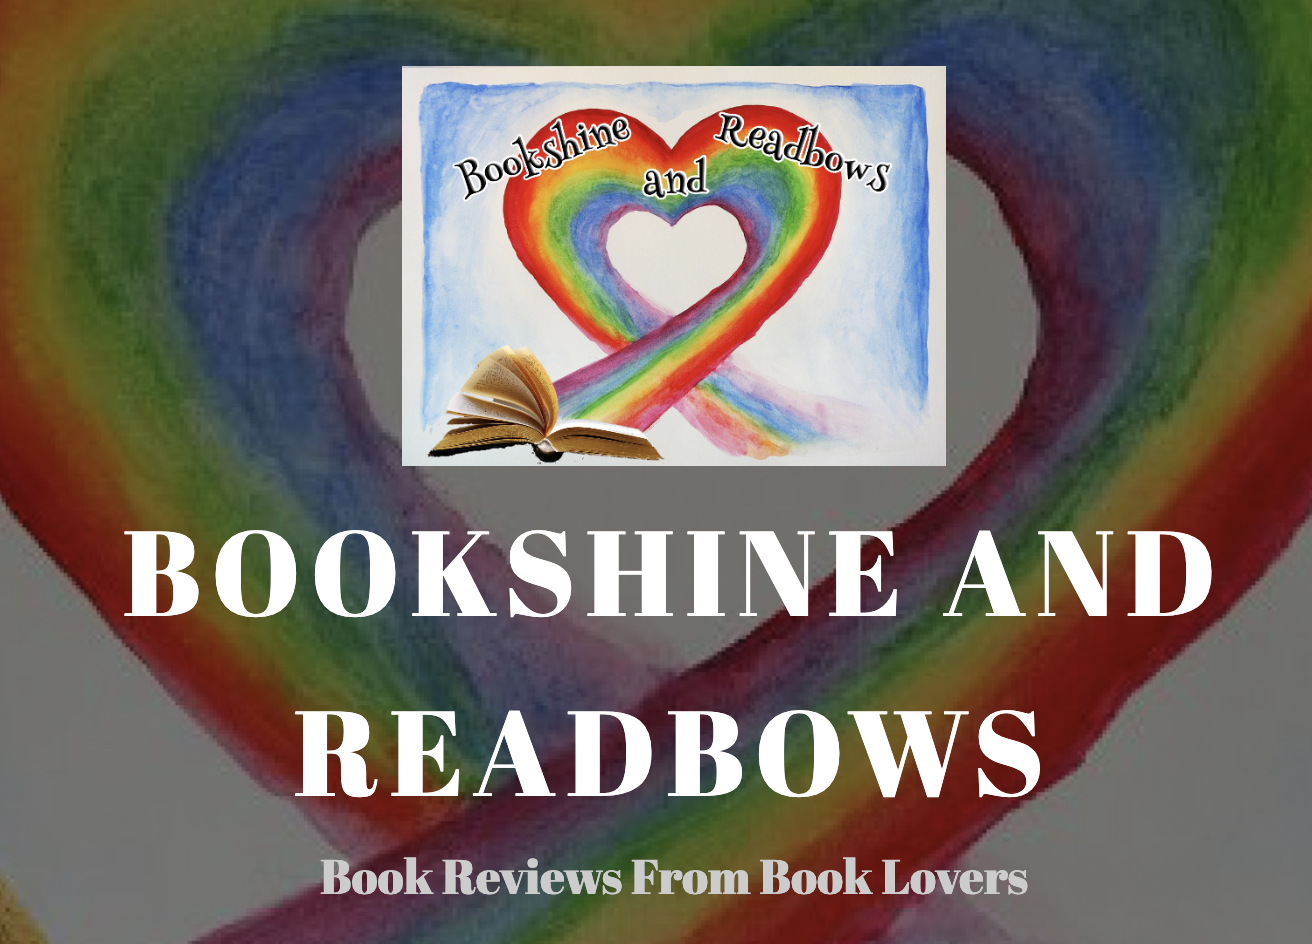 Bookshine and Readbows